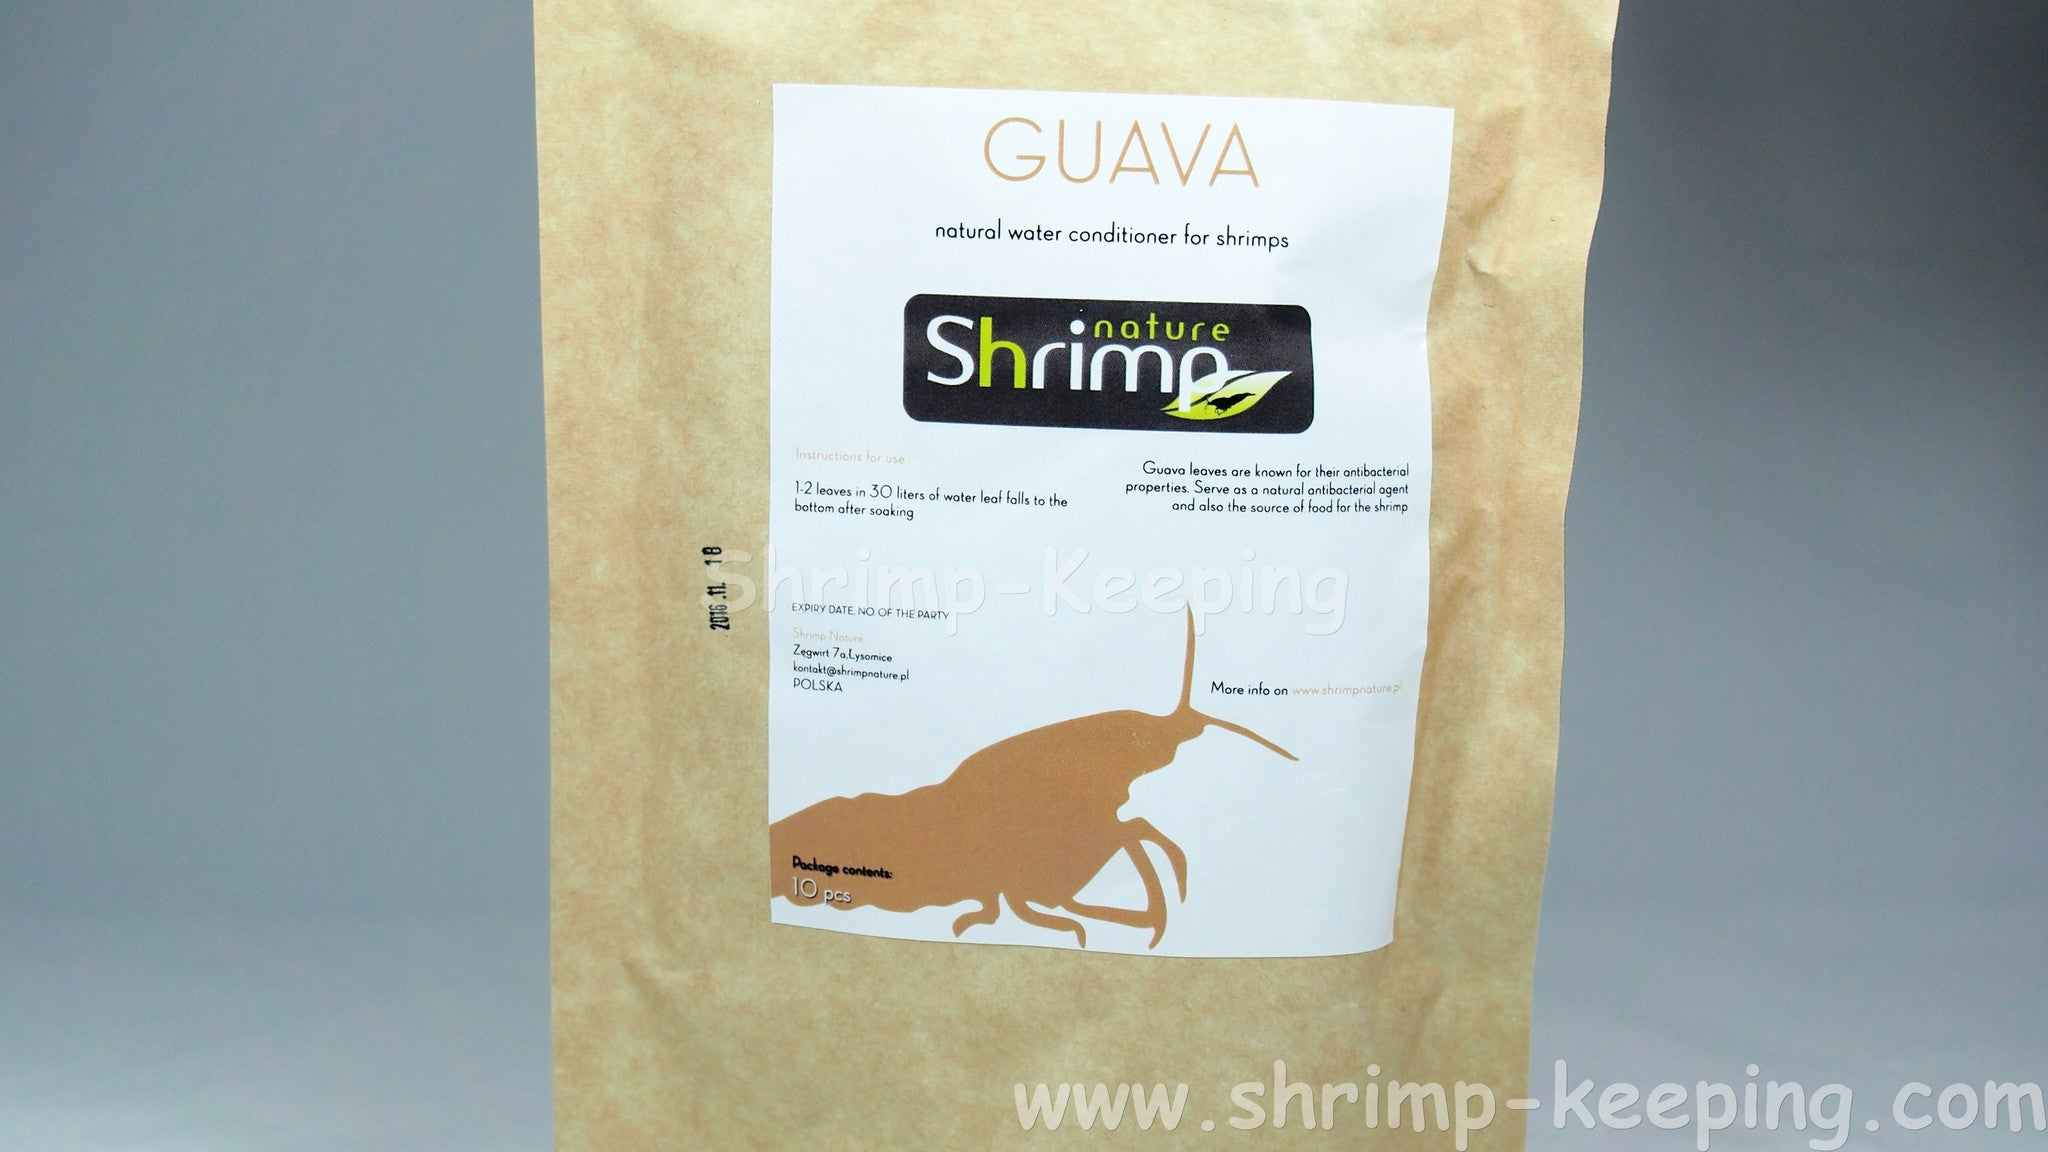 shrimp nature guava leaves